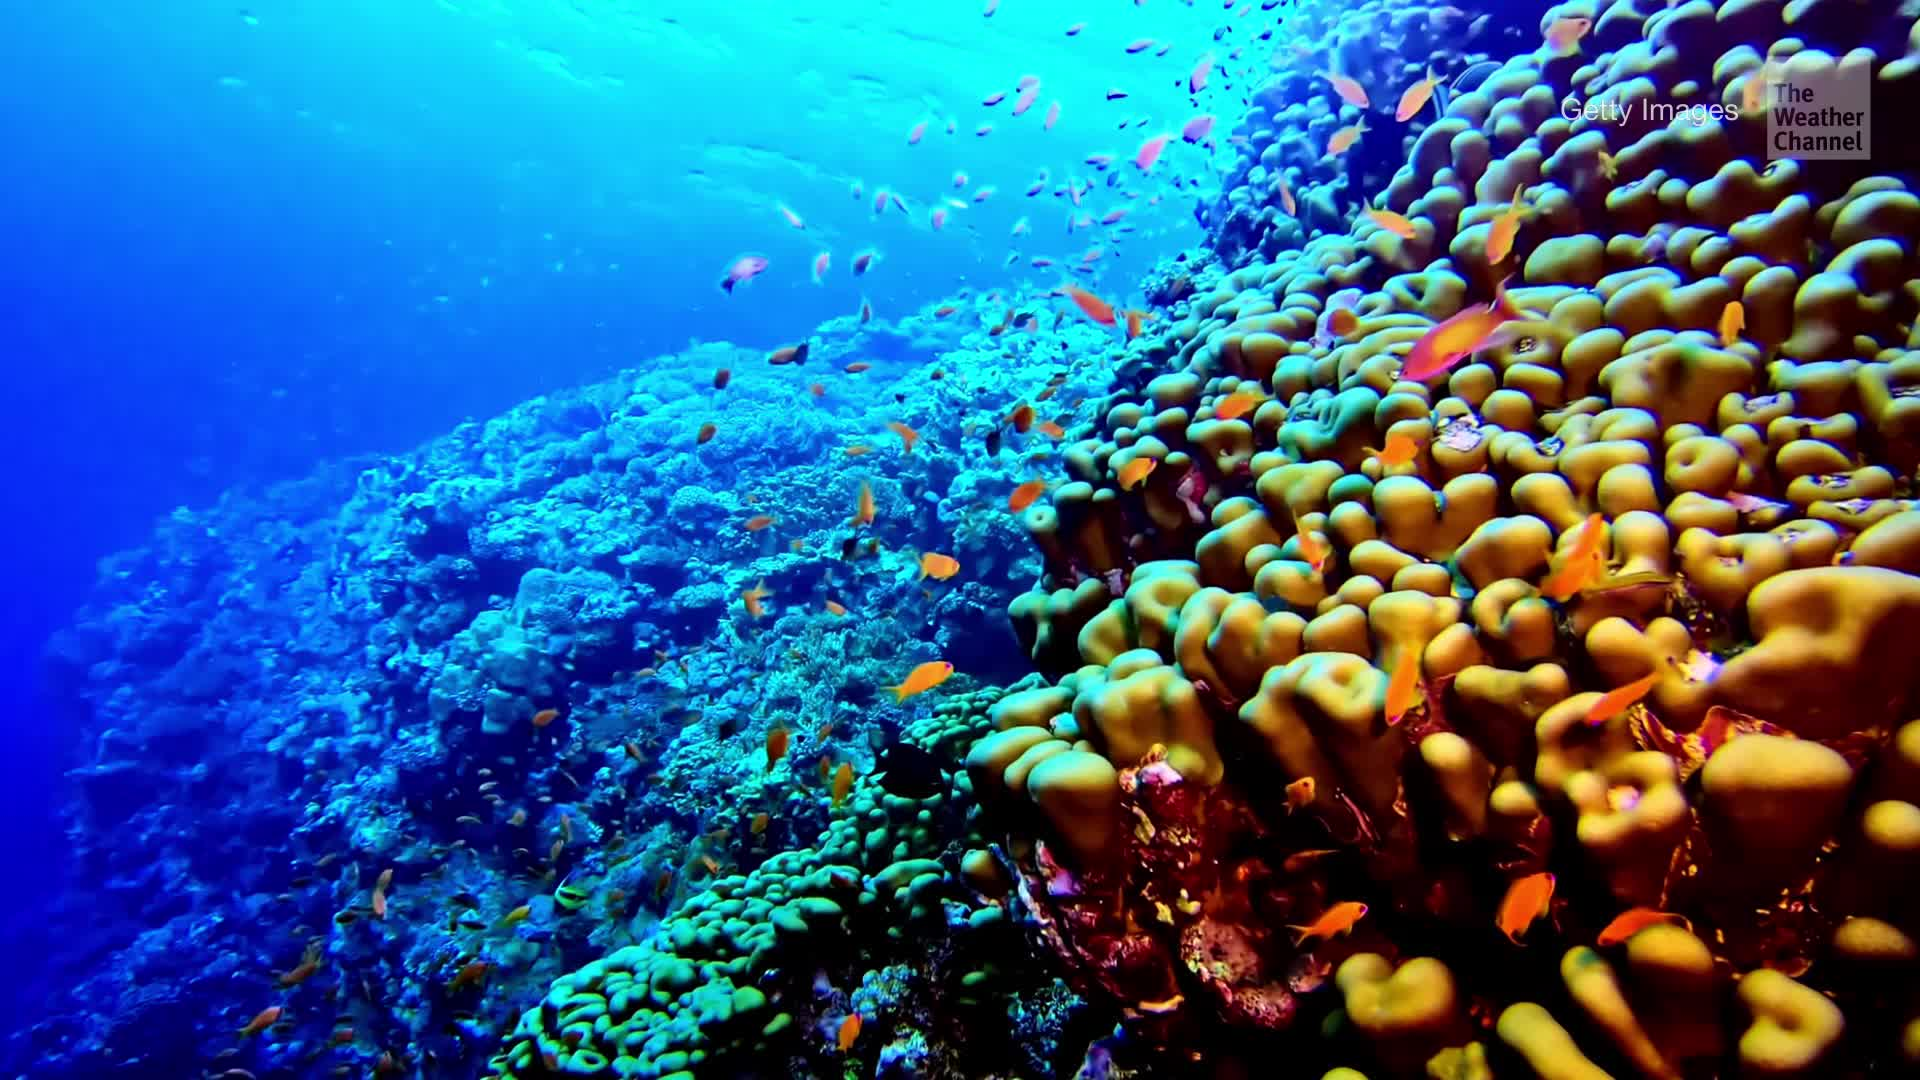 All of the world's coral reef habitats will be wiped out as our oceans become increasingly warm and acidic due to climate change and pollution, according to new research released at the annual Ocean Sciences Meeting.